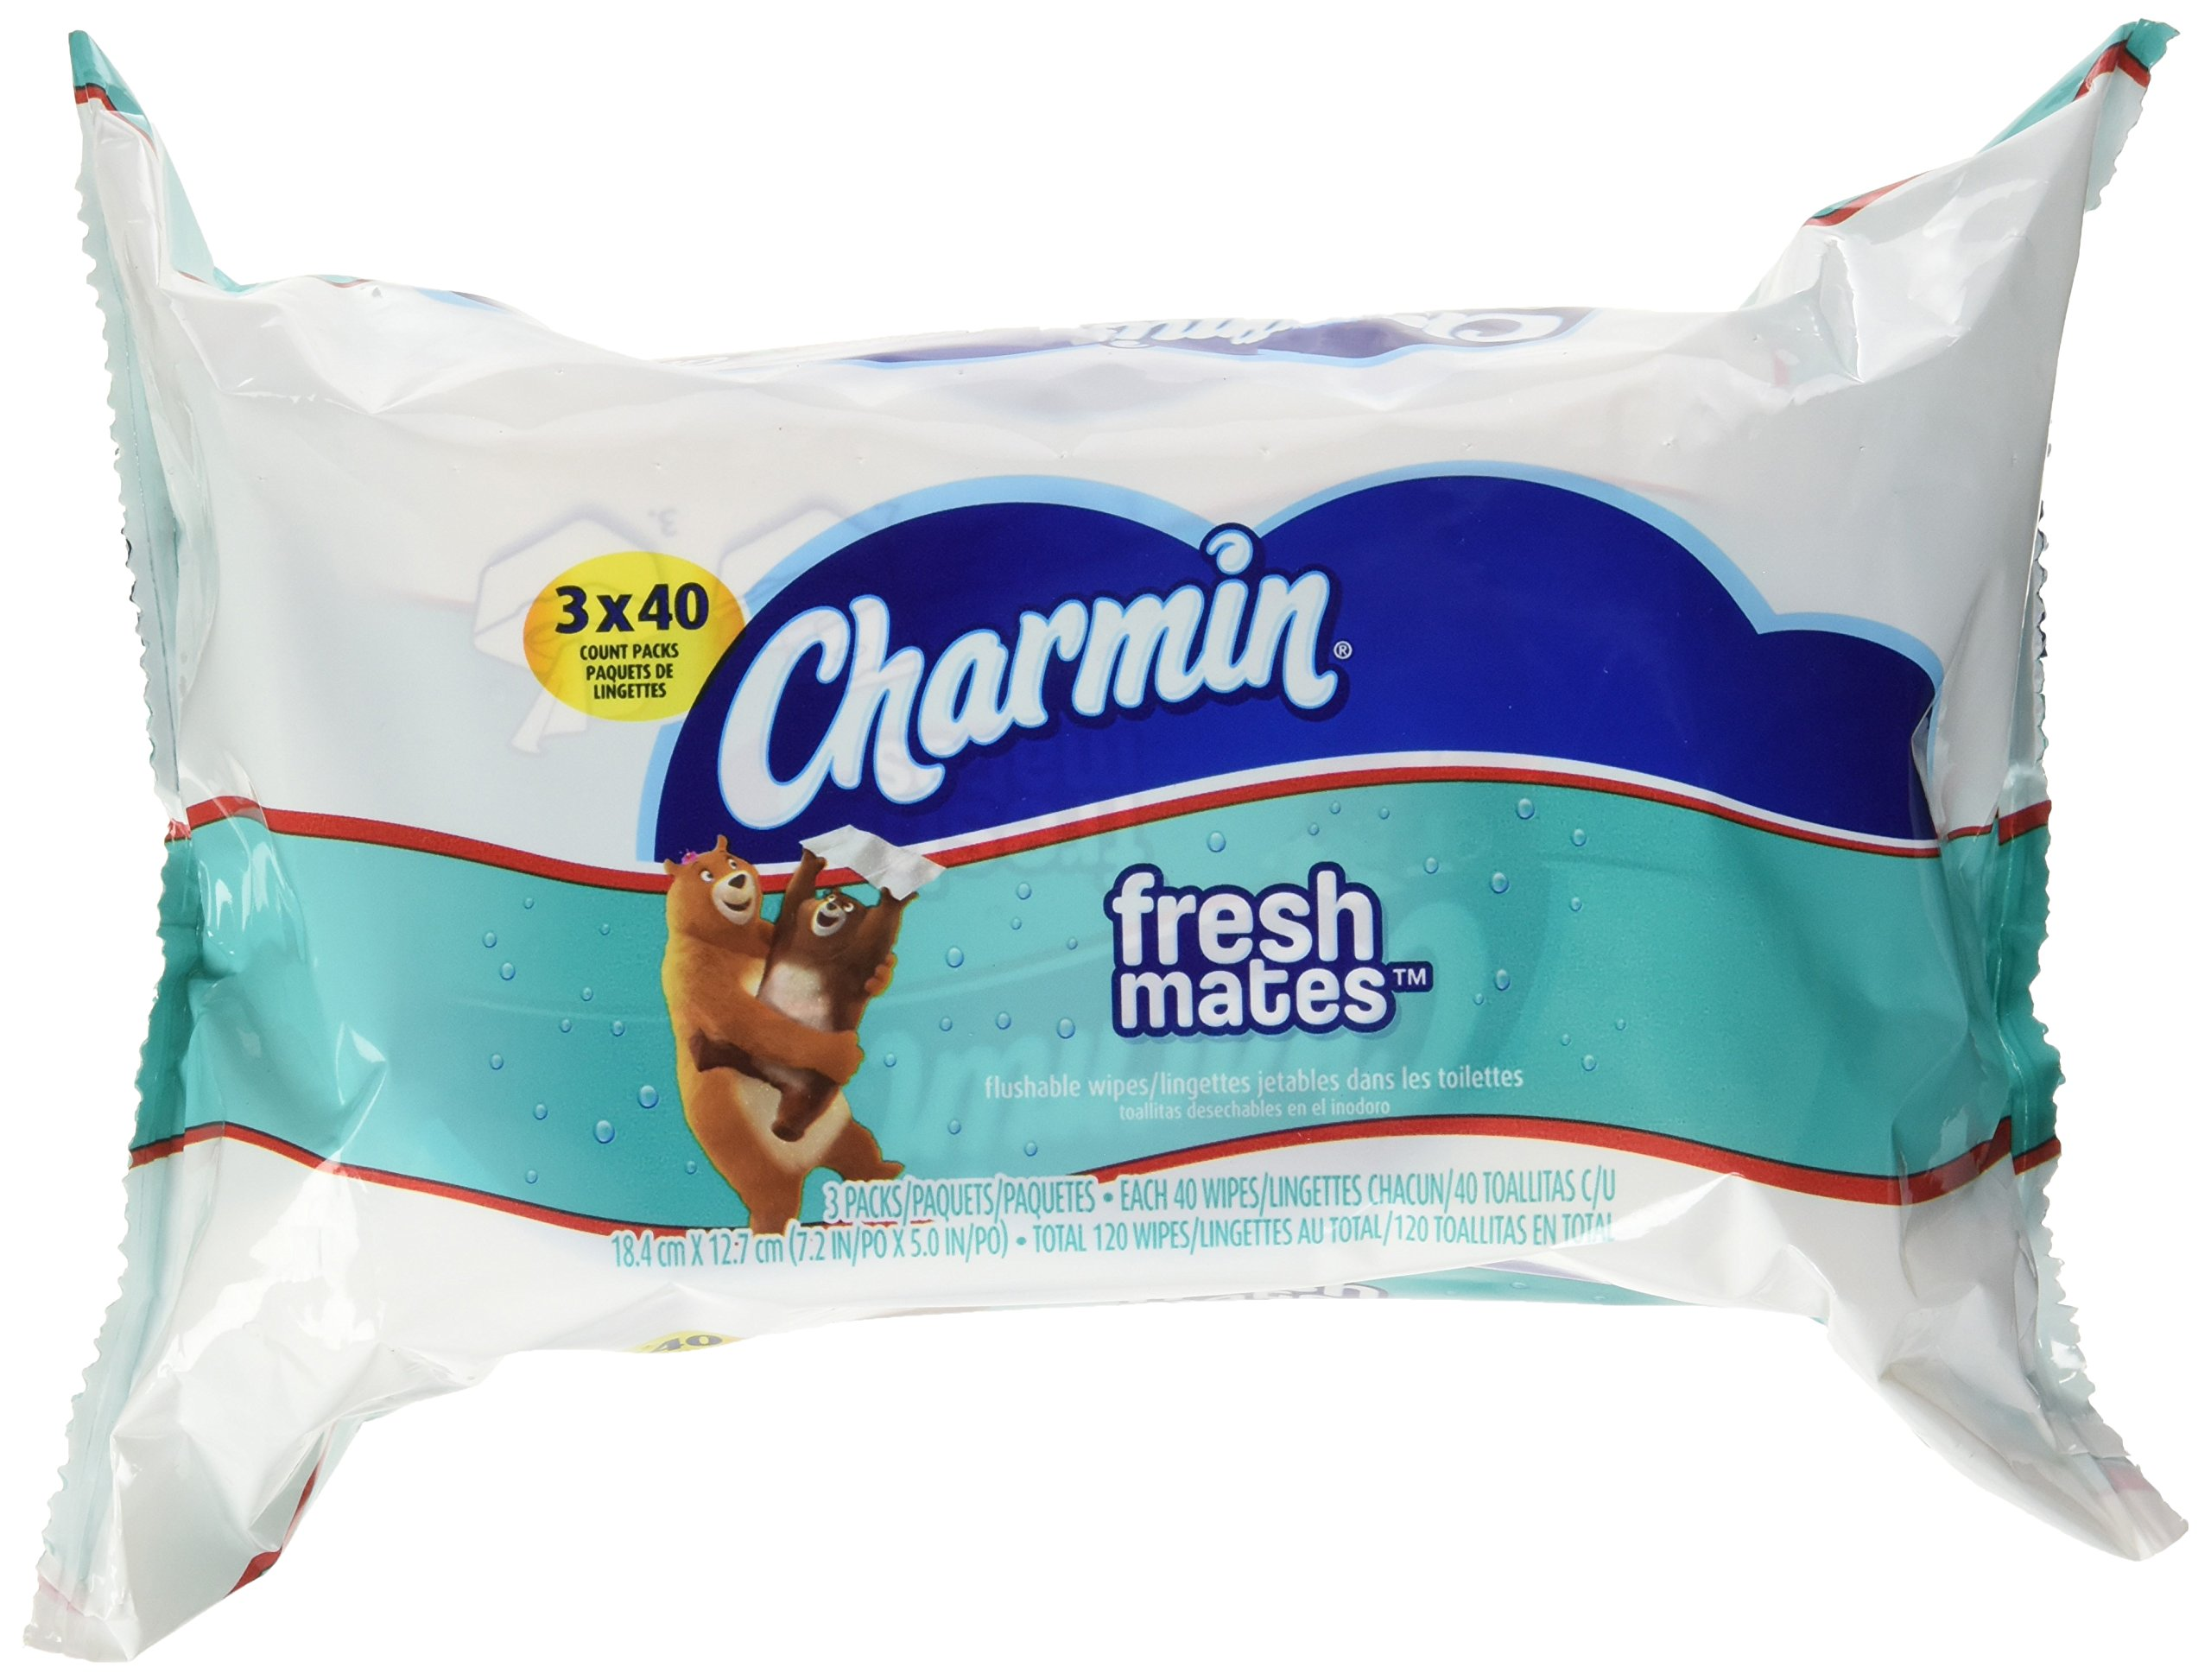 Charmin Freshmates 120 Count Refill Pack (3 sets of 40 Count Fresh Wipes) Pack of 8 by Charmin